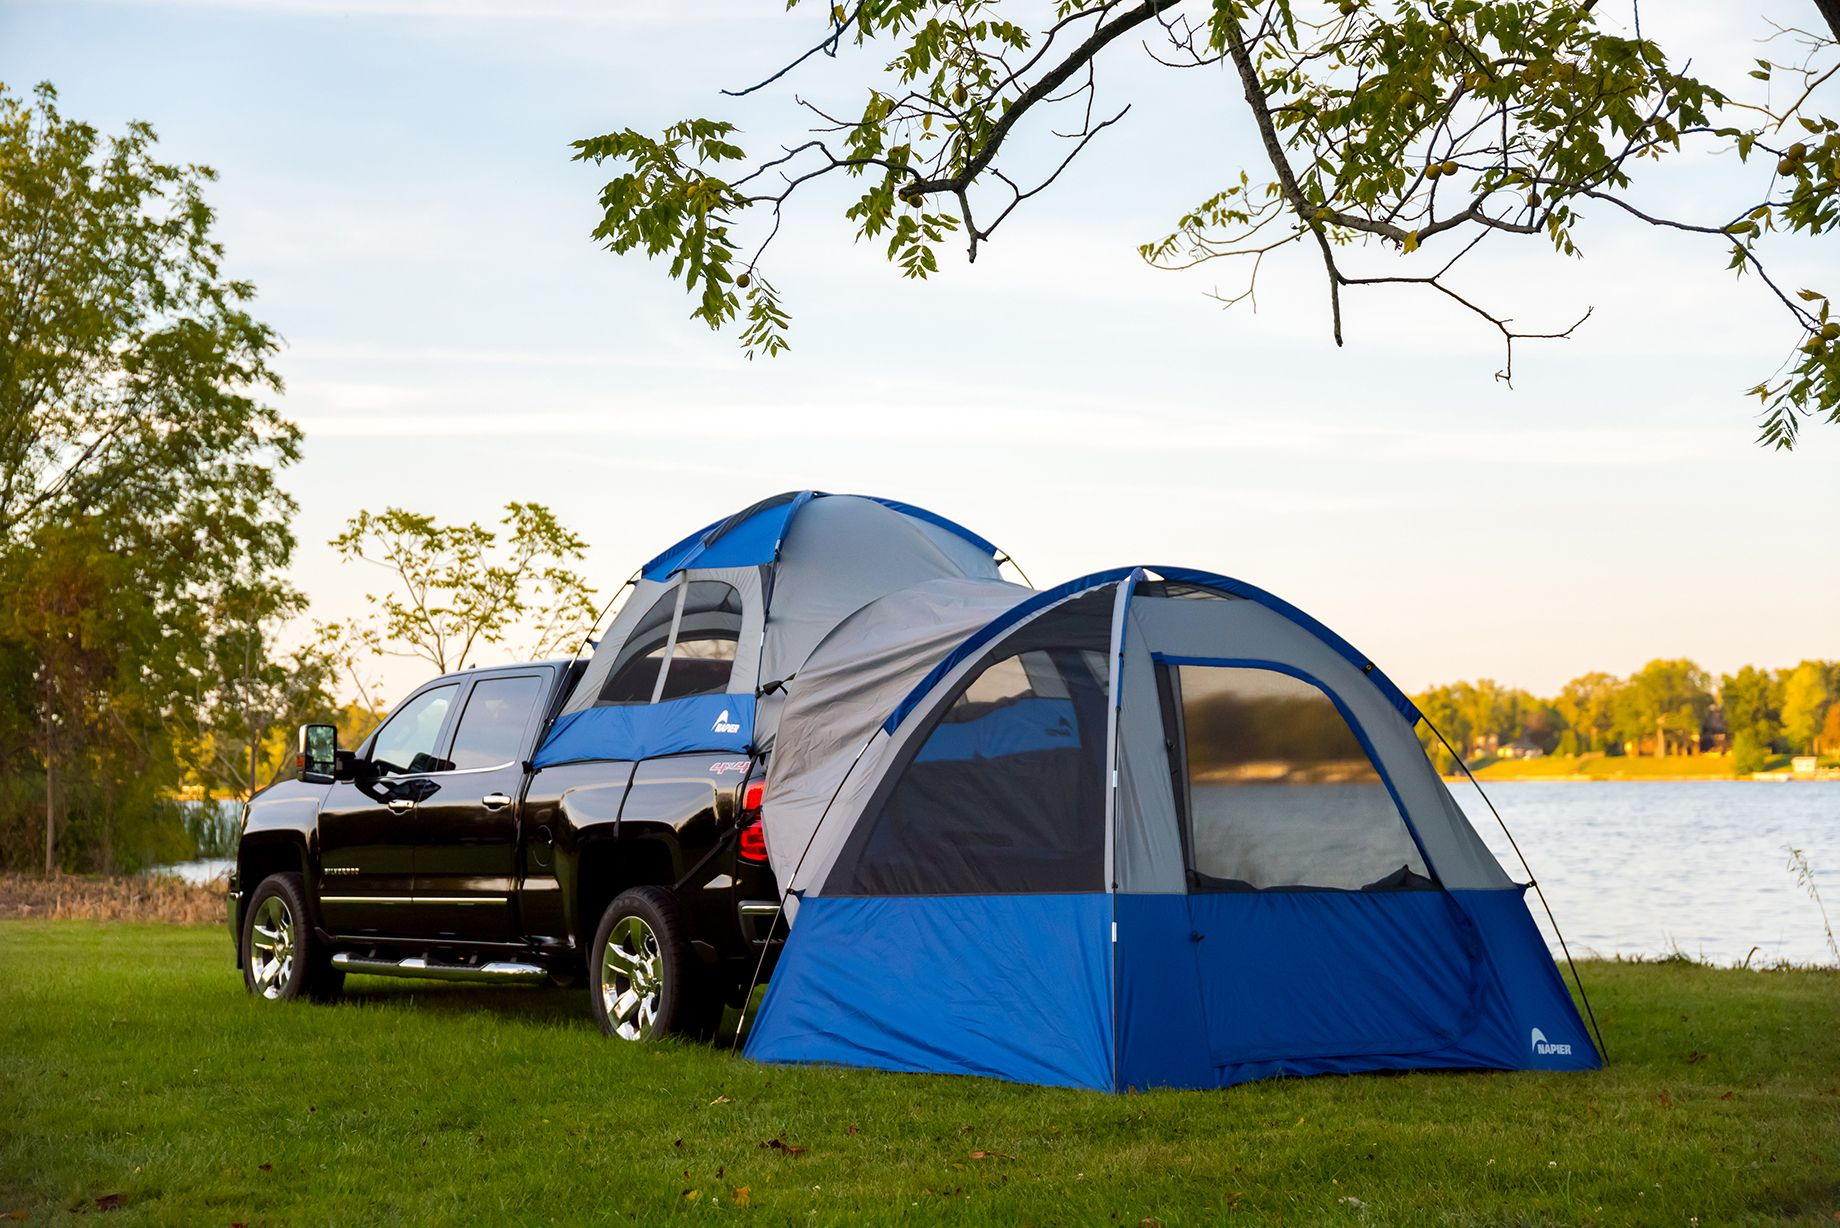 truck tents camping tents vehicle camping tents   outdoor   store camping